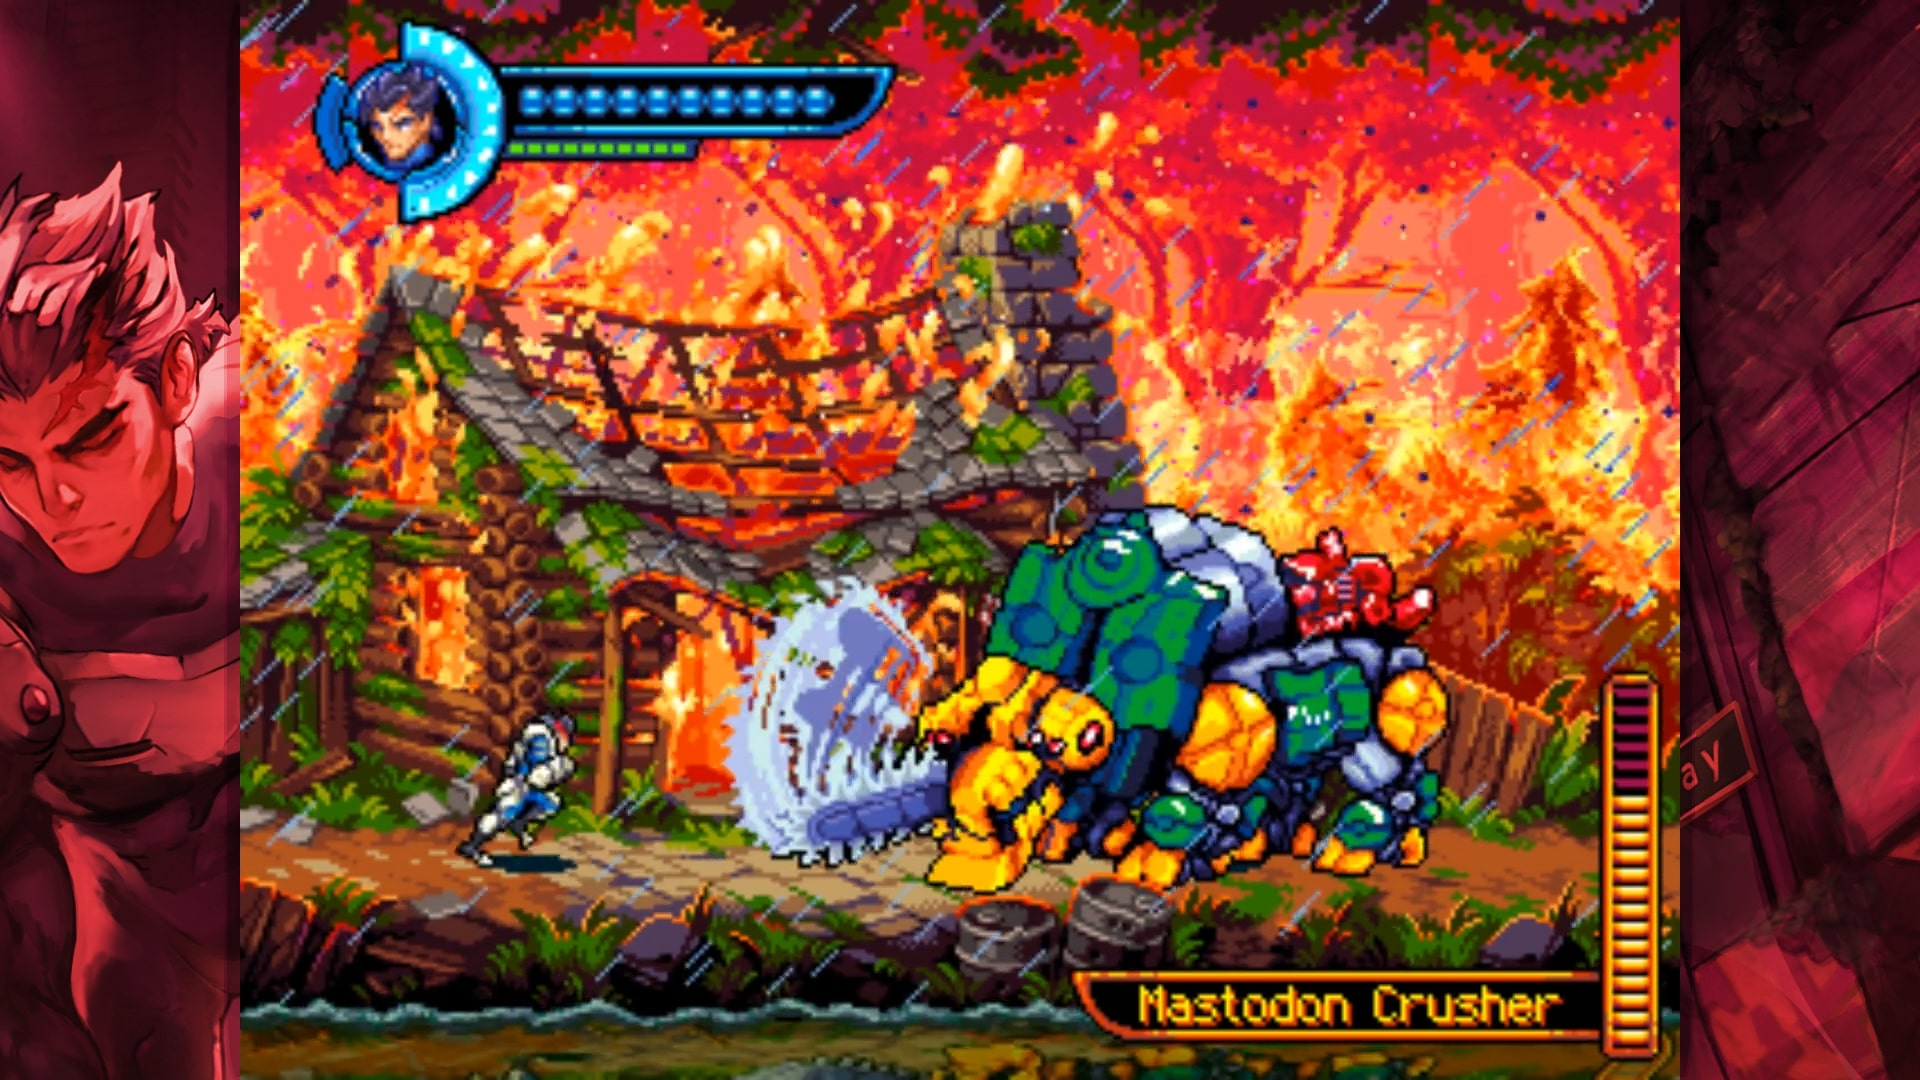 Even minor bosses display a high level of detail in art and animation.